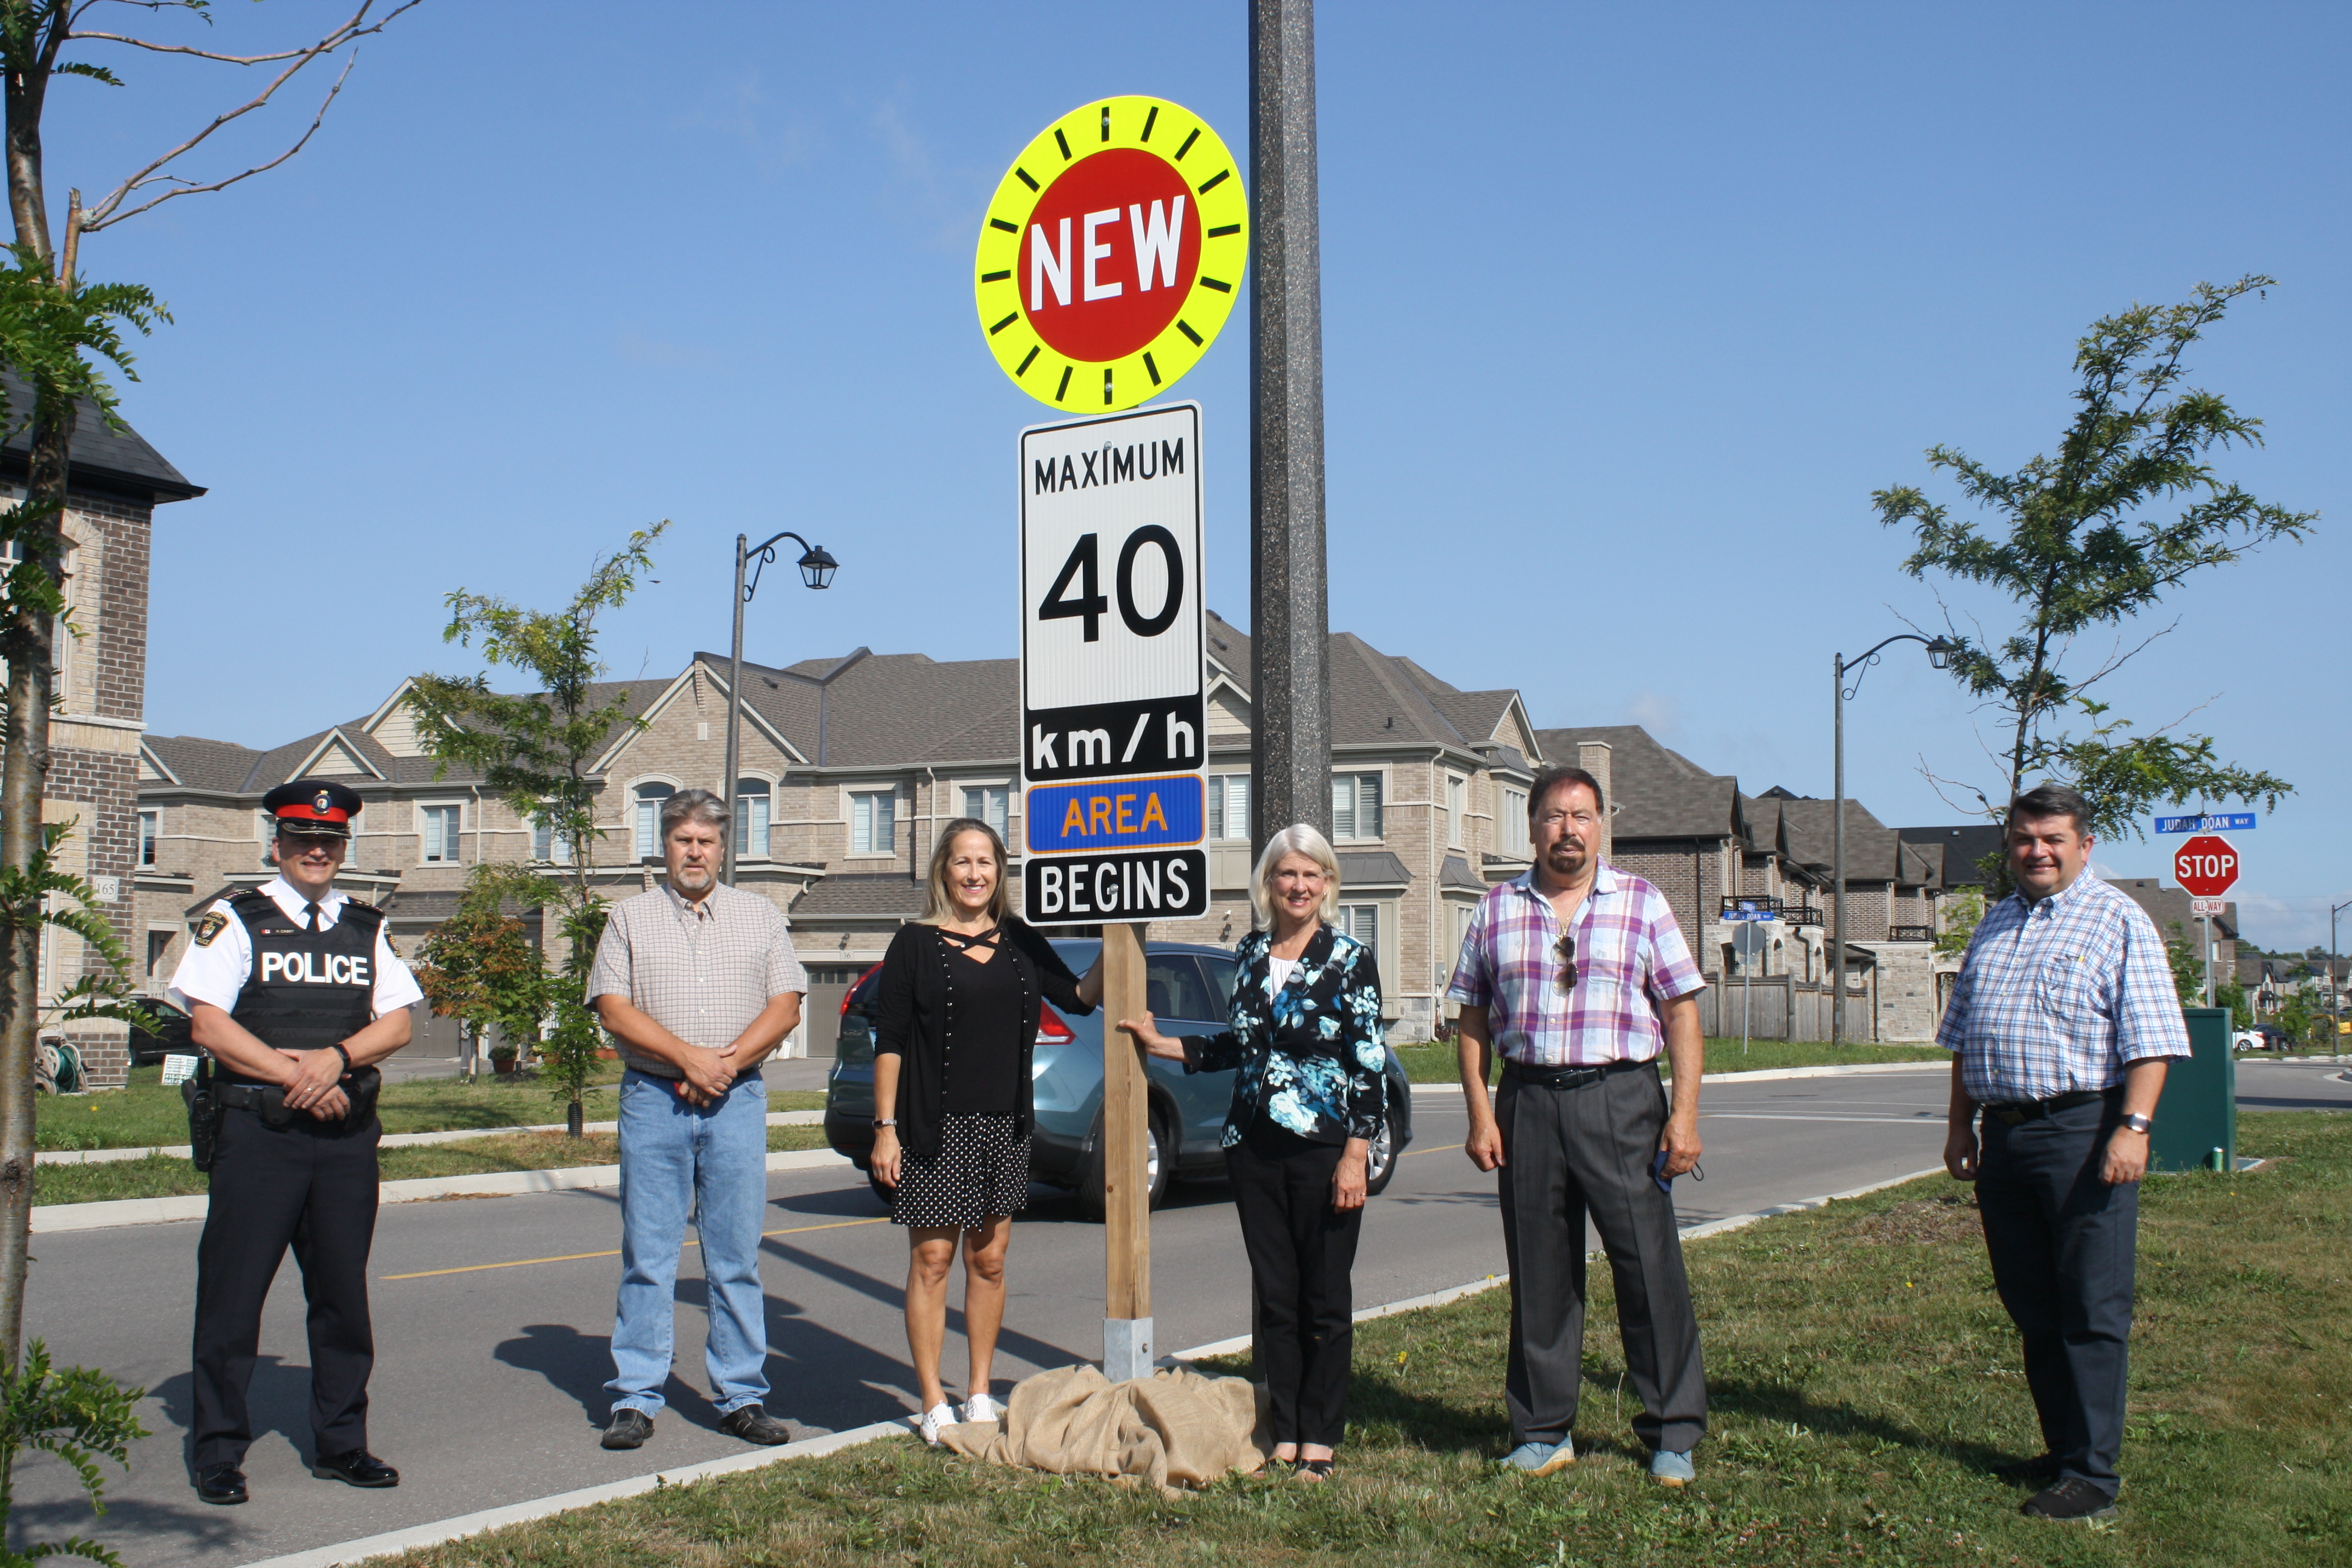 Council Installing Gateway Speed Limit Sign